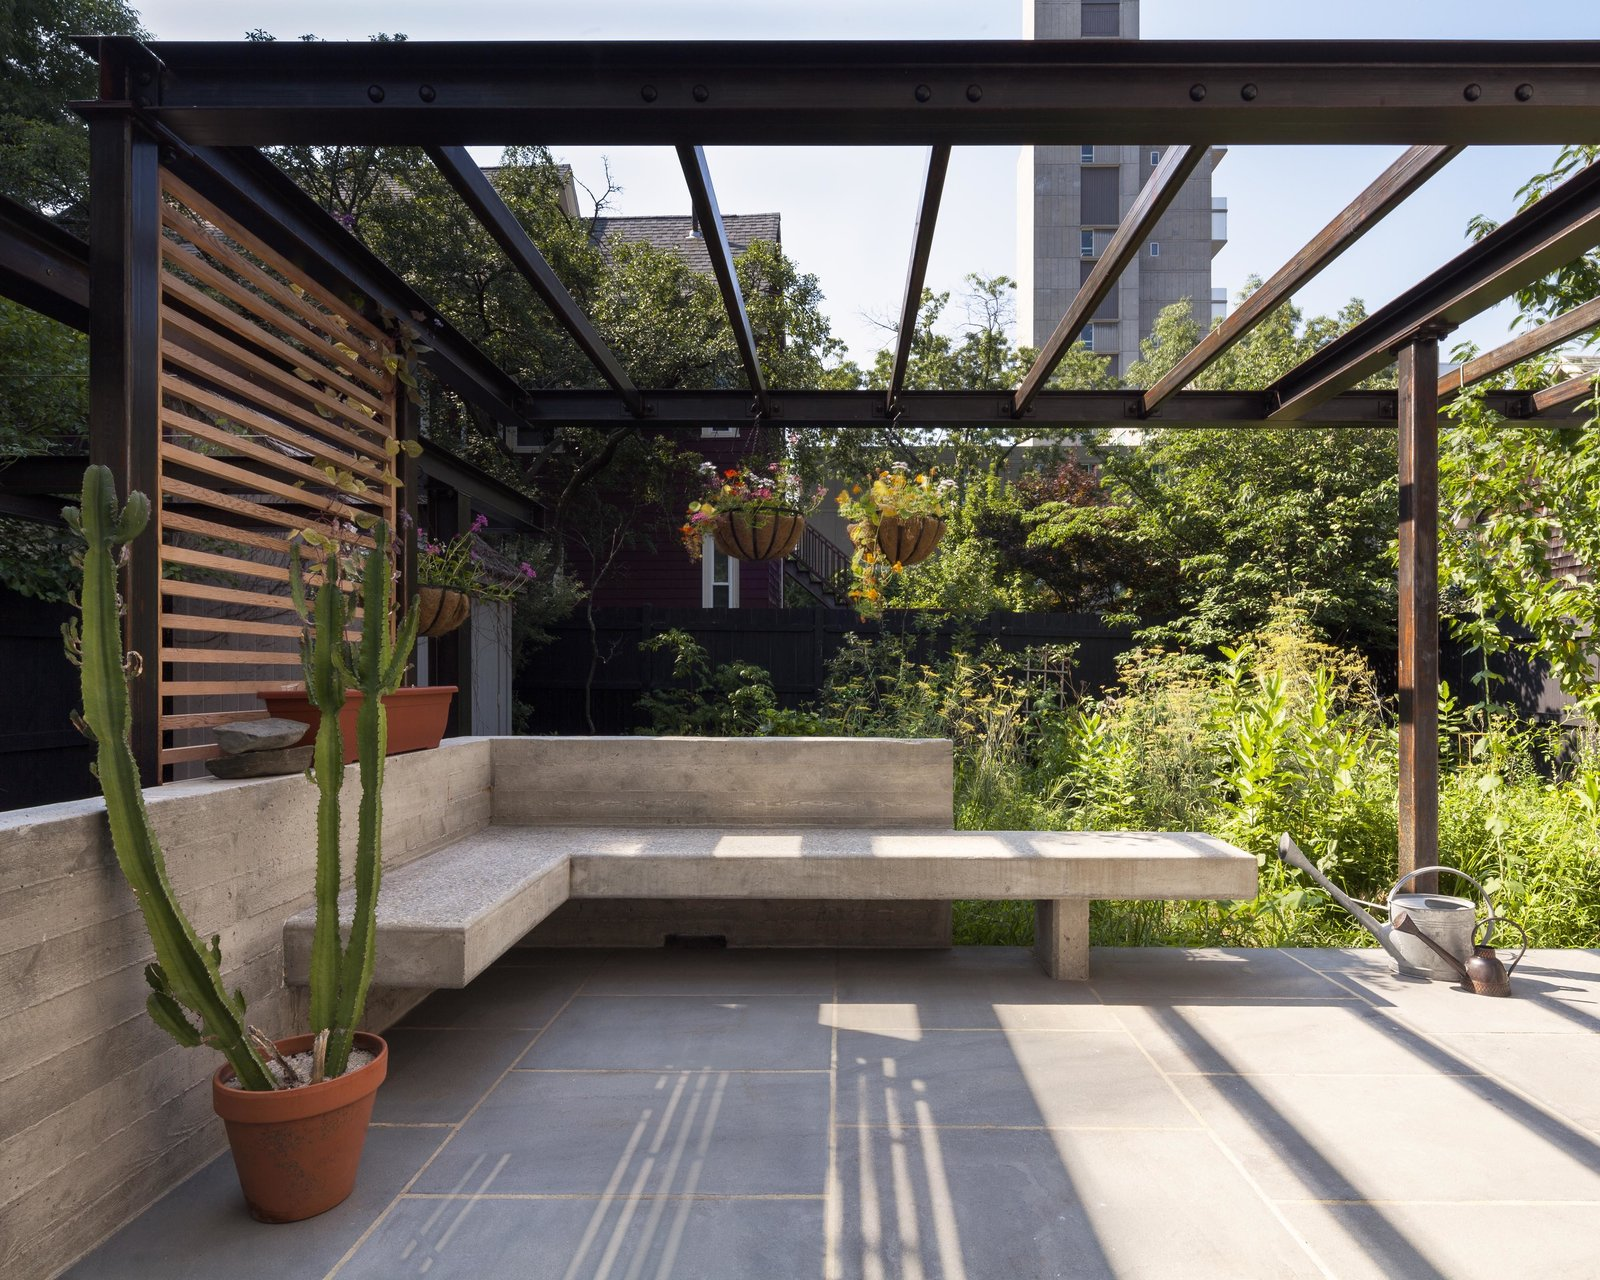 Outdoor, Back Yard, Gardens, Flowers, Hardscapes, Garden, Shrubs, Small, Decking, Metal, Stone, Concrete, and Wood The combination of a low concrete wall and built-in bench creates an intimate seating area that acts as an extension to the kitchen and dining room. Another steel trellis above creates an armature for more plants that will fill in and provide shade. The terrace is topped with blue stone and wood screens give the plants a ladder on which to grow.  Best Outdoor Metal Concrete Photos from Cambridge Terrace